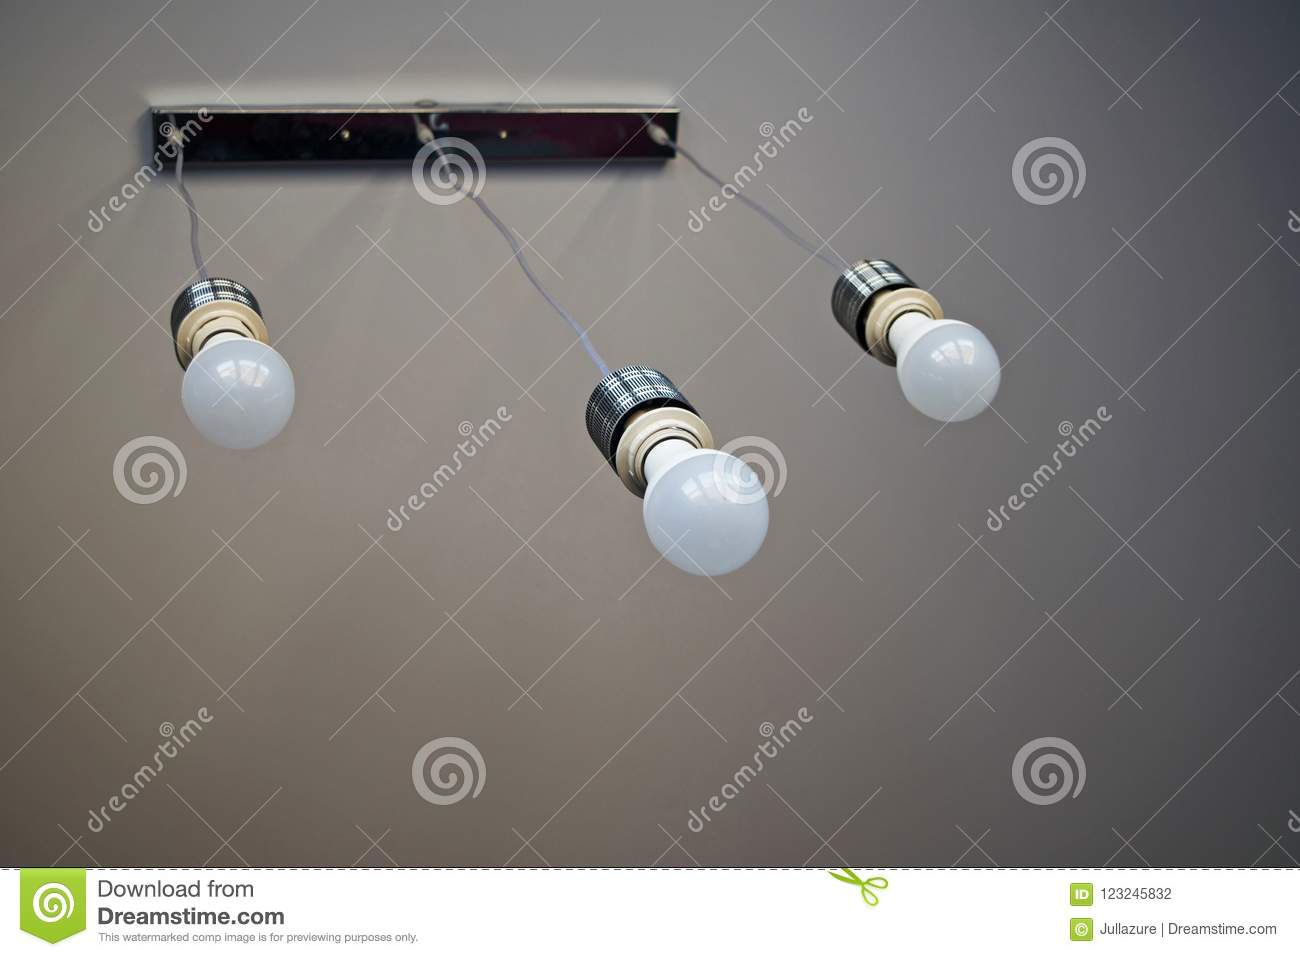 Modern Lamps Led Some Led Lamps Scientific Technology Led Light Bulb